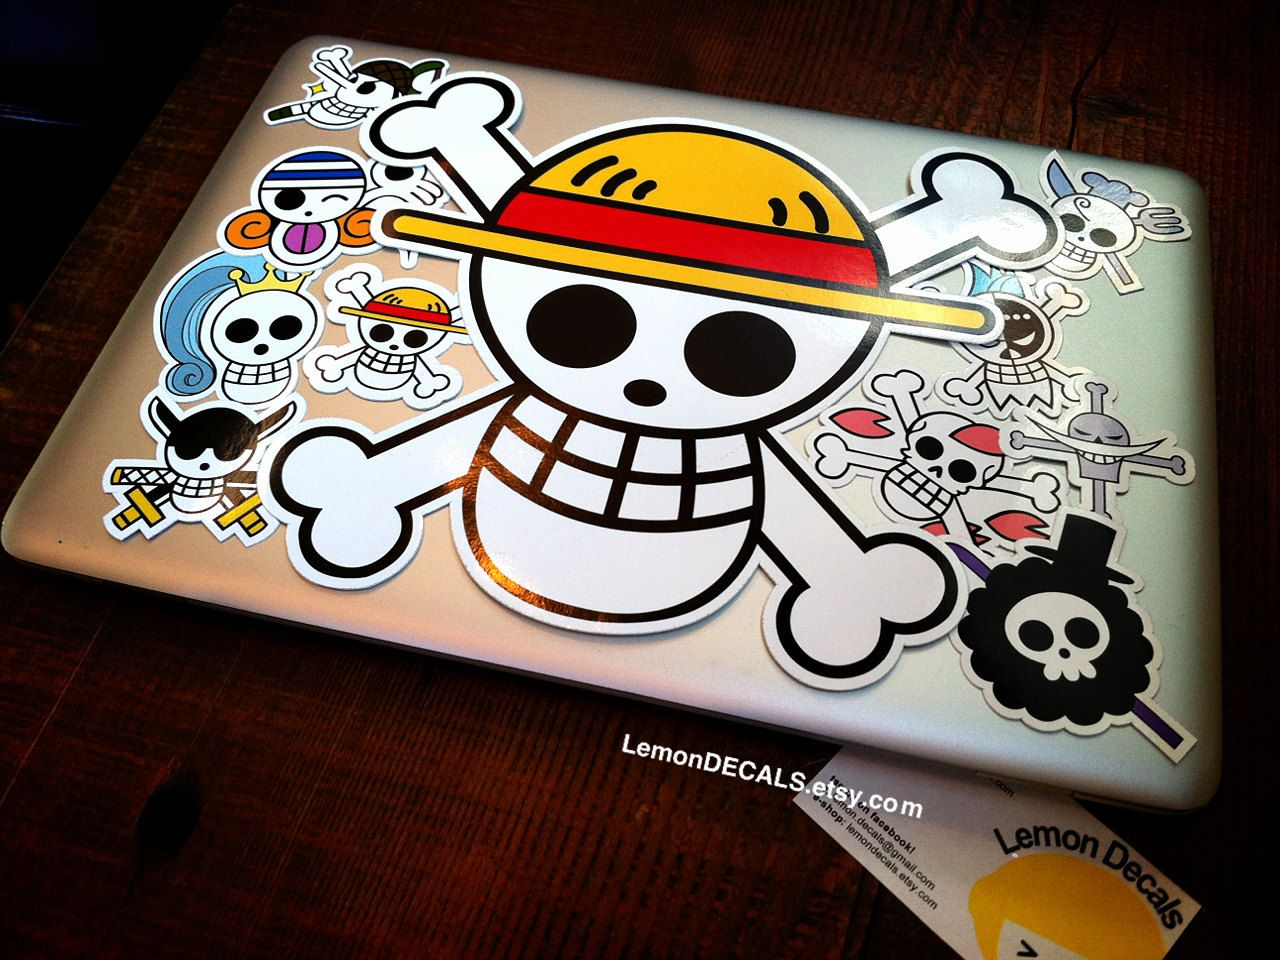 One piece luffy straw hat 10 computer laptop decal lemondecals computer laptop